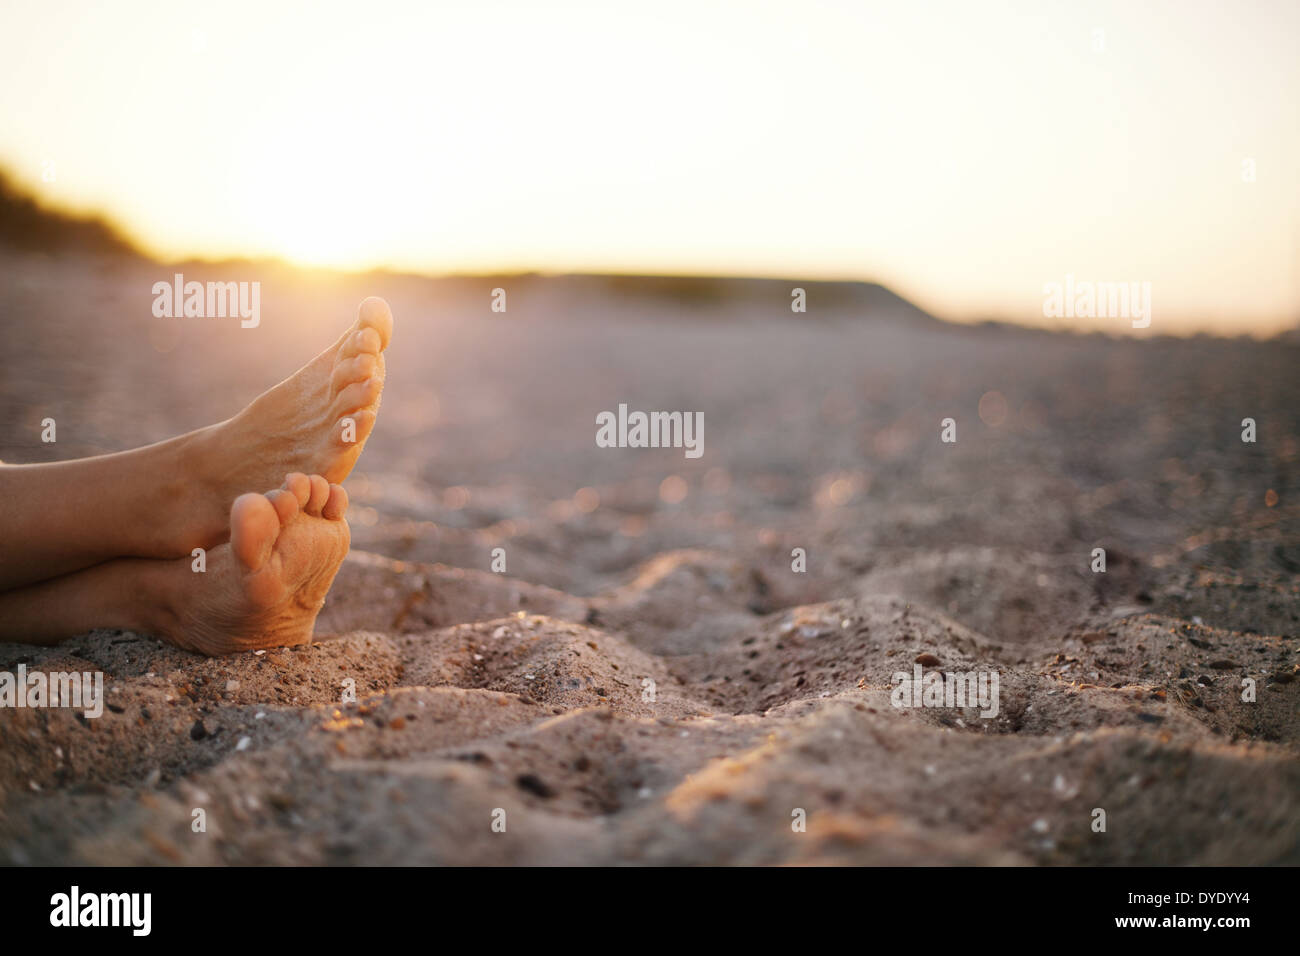 Closeup image of feet of old woman sitting relaxed on sandy beach. - Stock Image